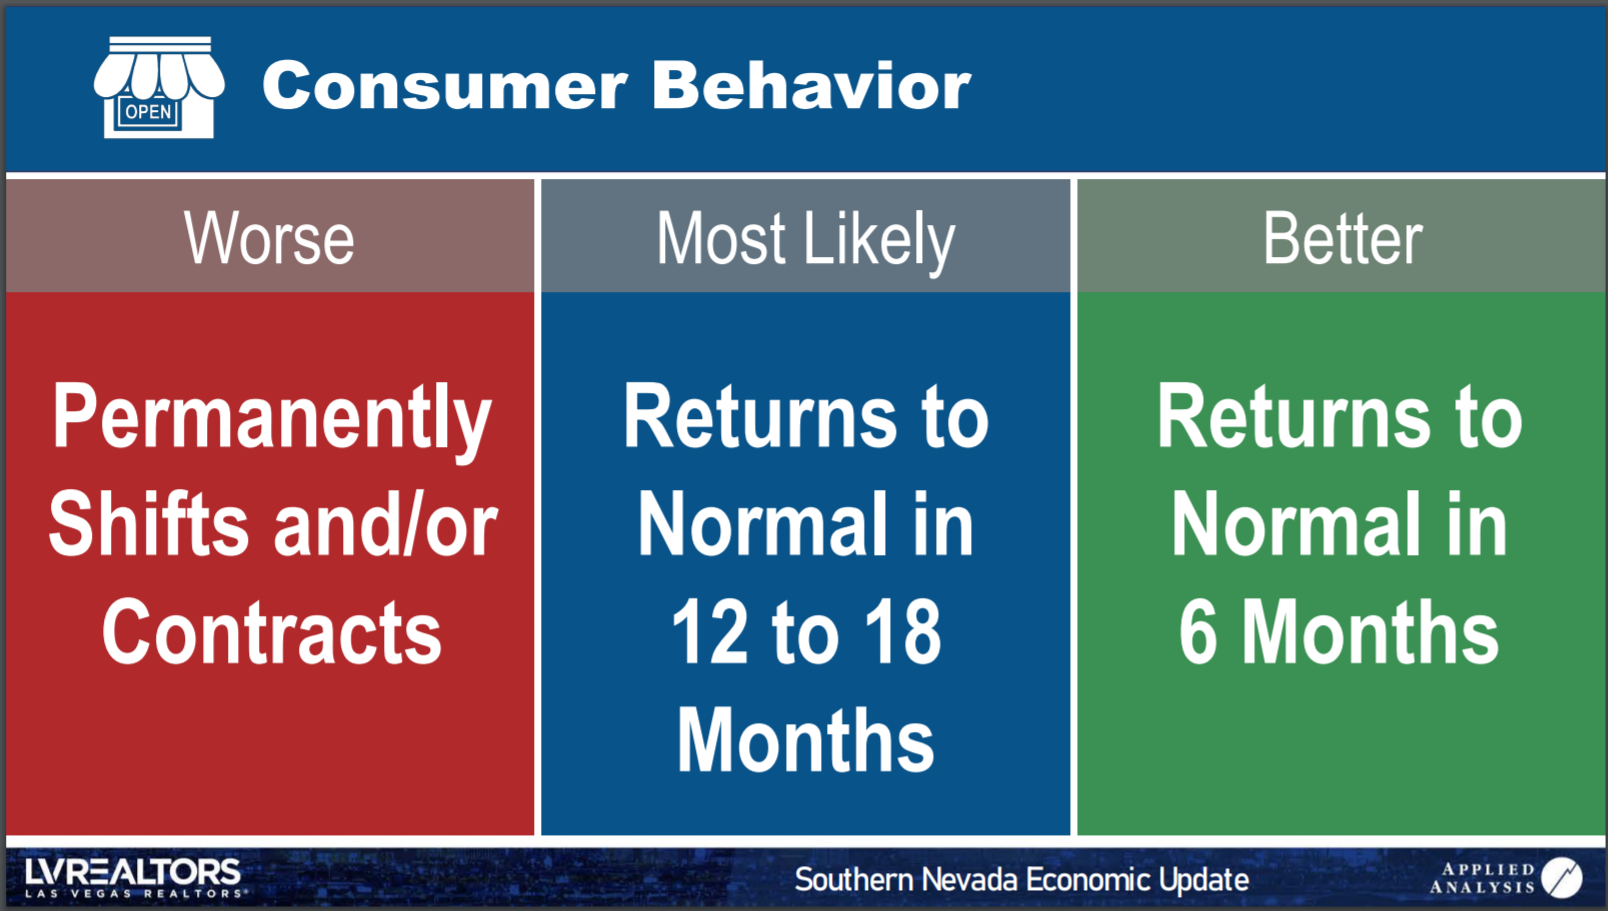 LAS VEGAS CONSUMER BEHAVIOR CHART